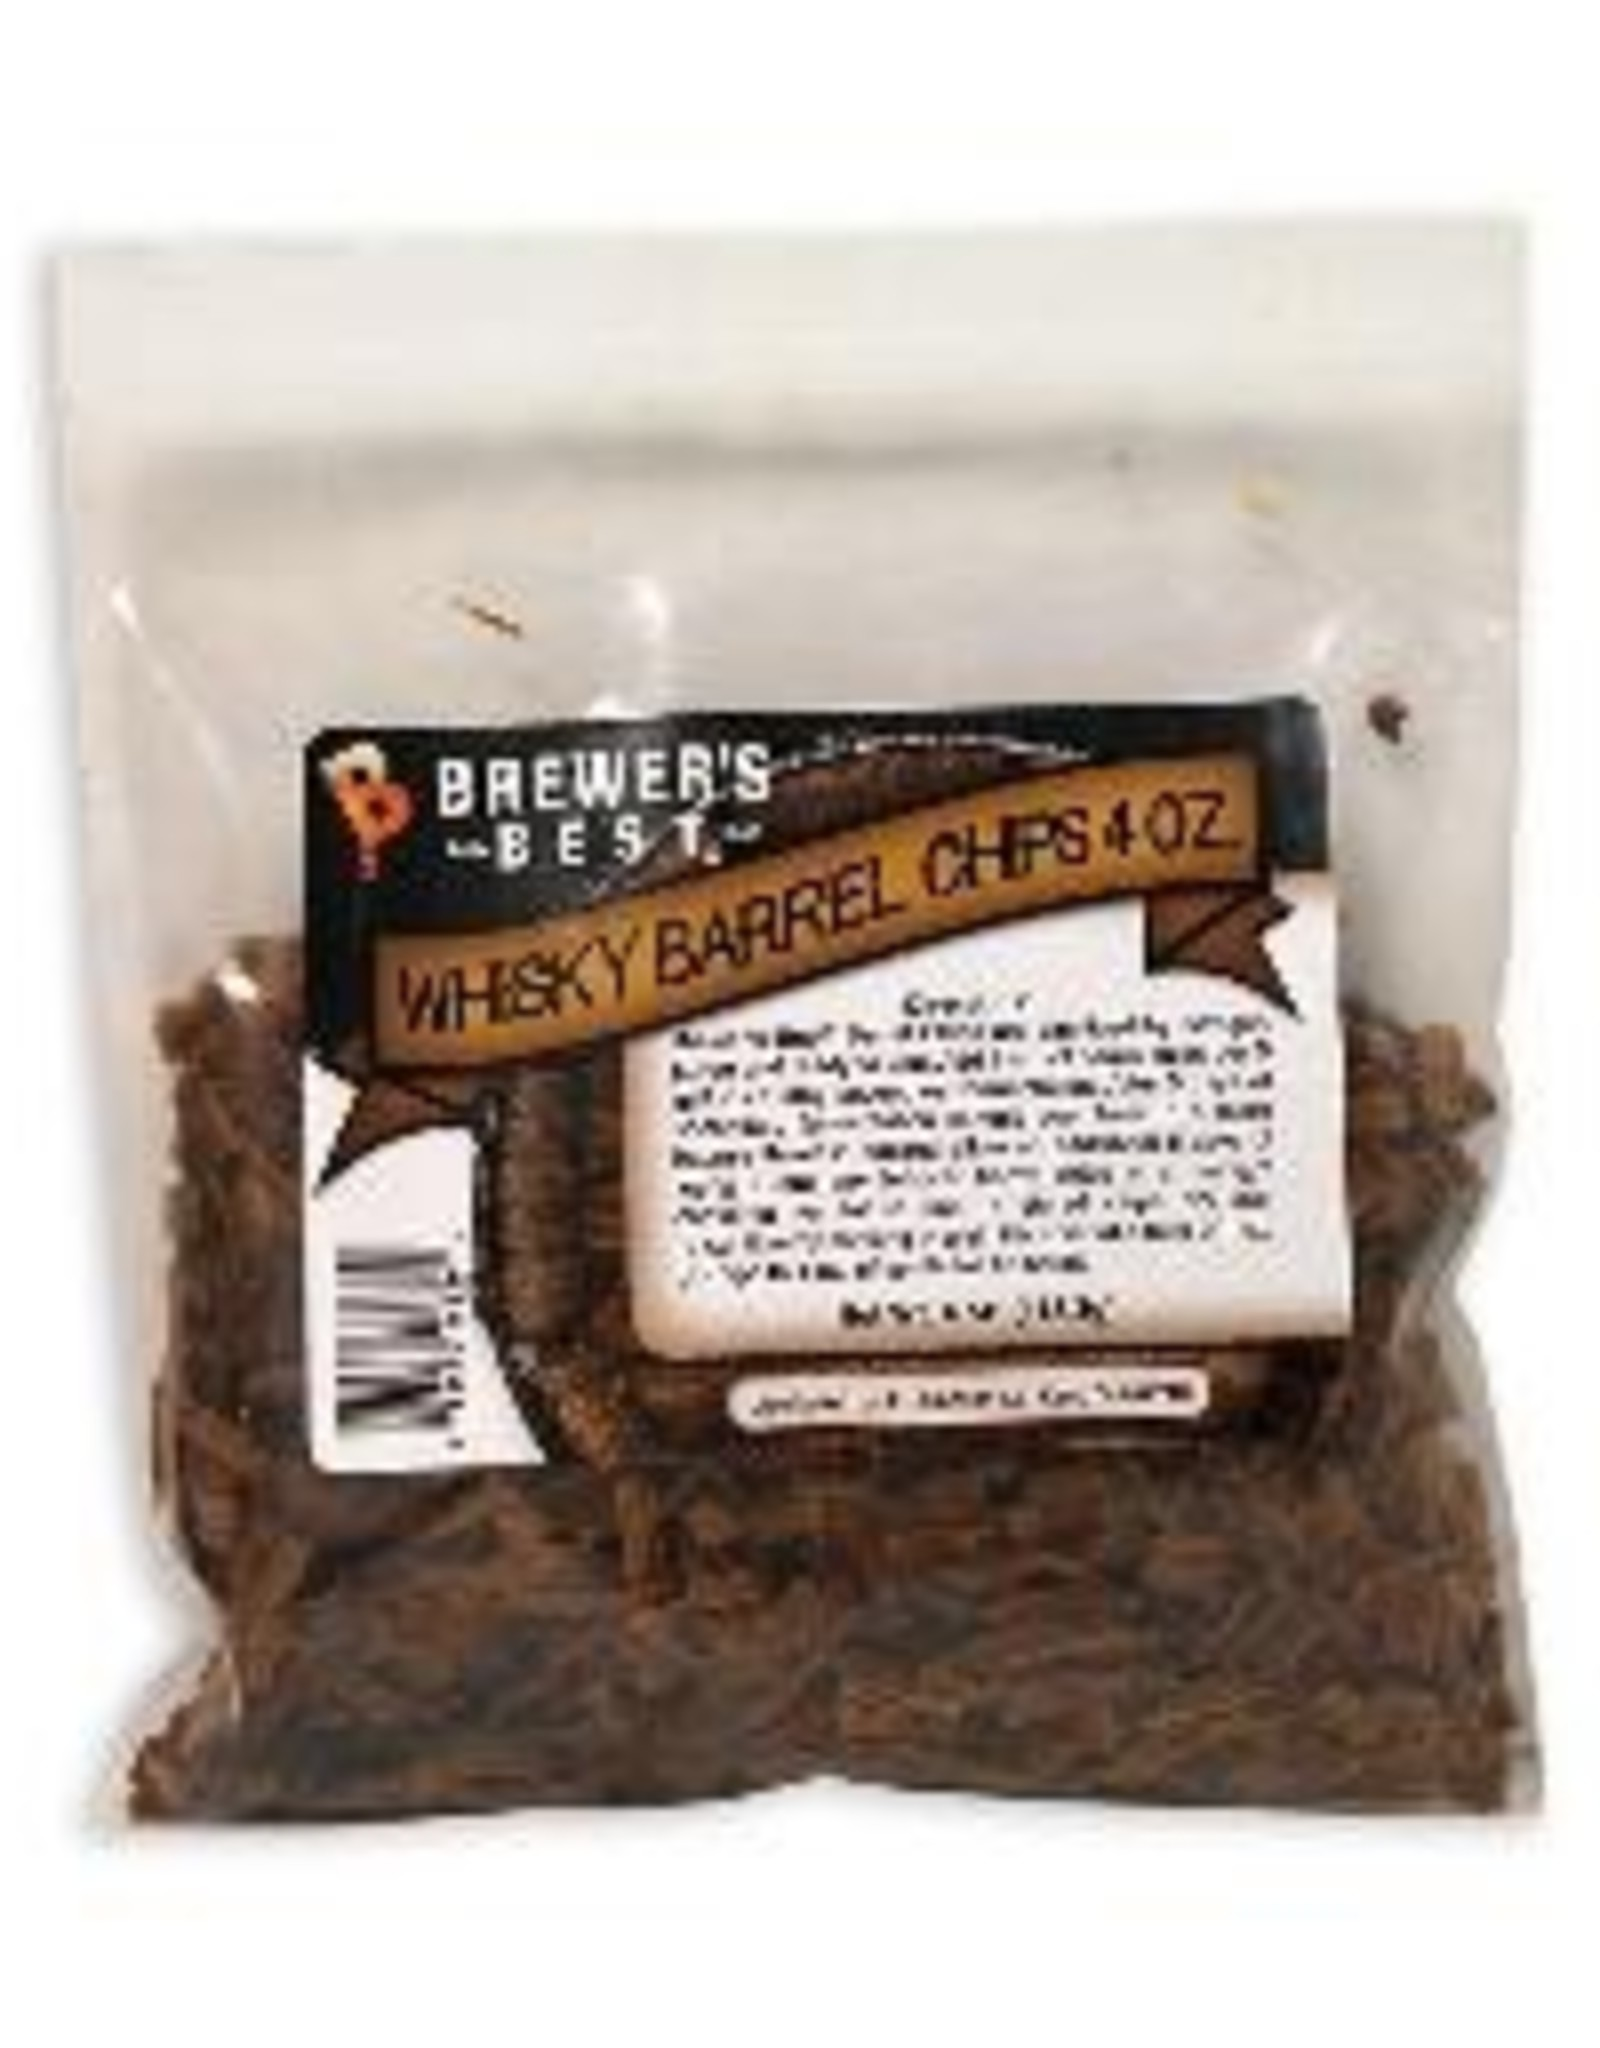 BREWERS BEST BREWER'S BEST® WHISKY BARREL CHIPS 4 OZ